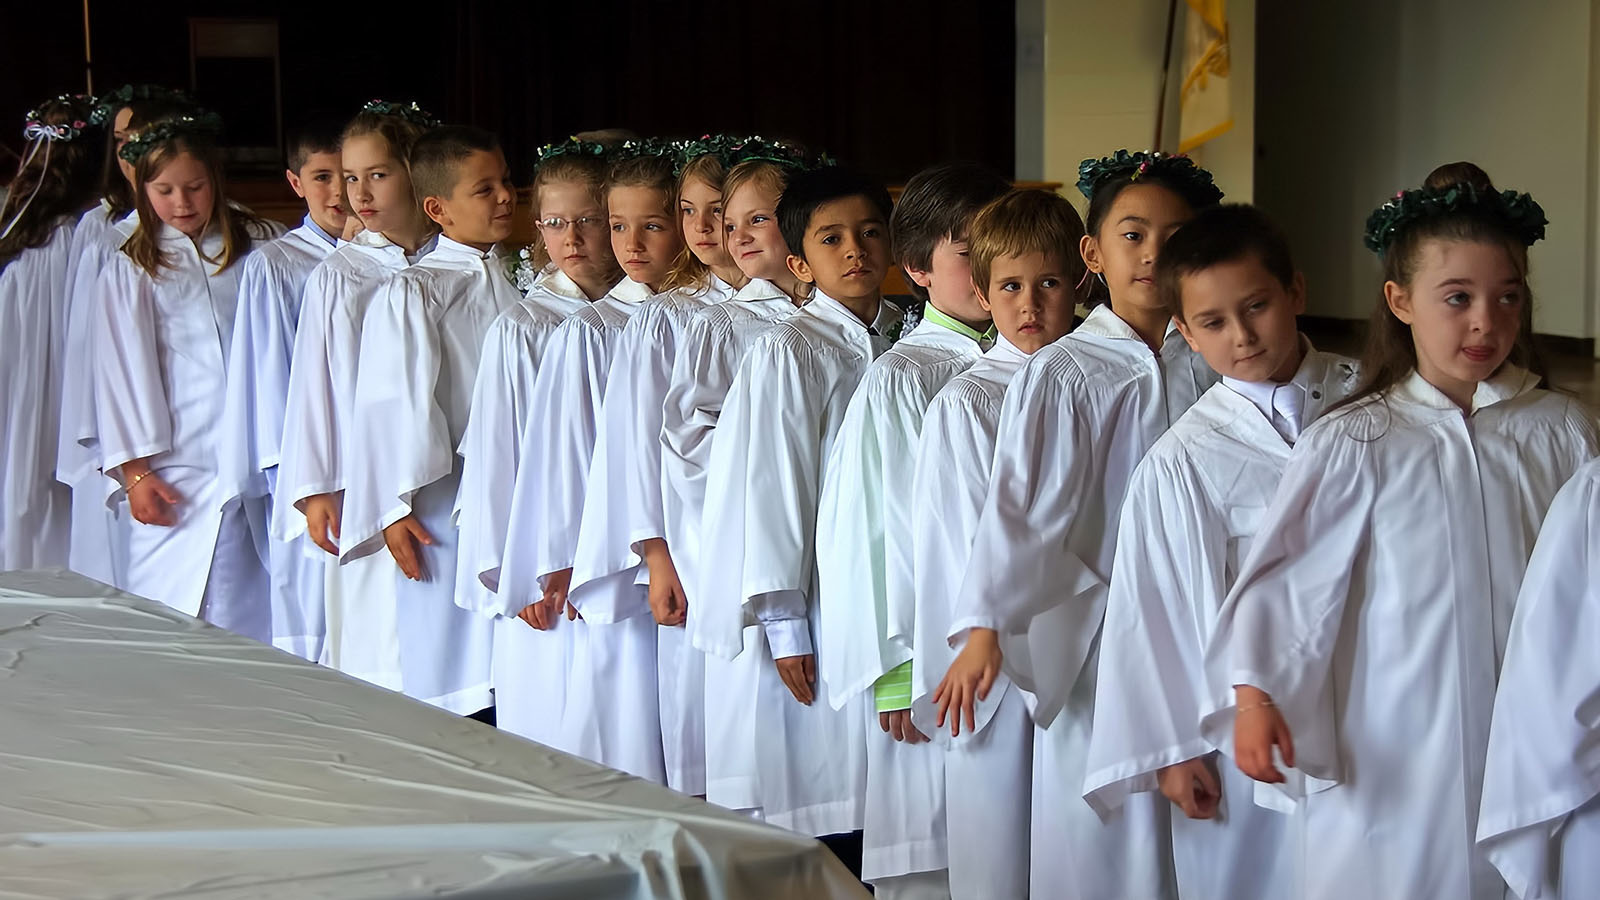 Children serving during mass line up in Middletown, CT